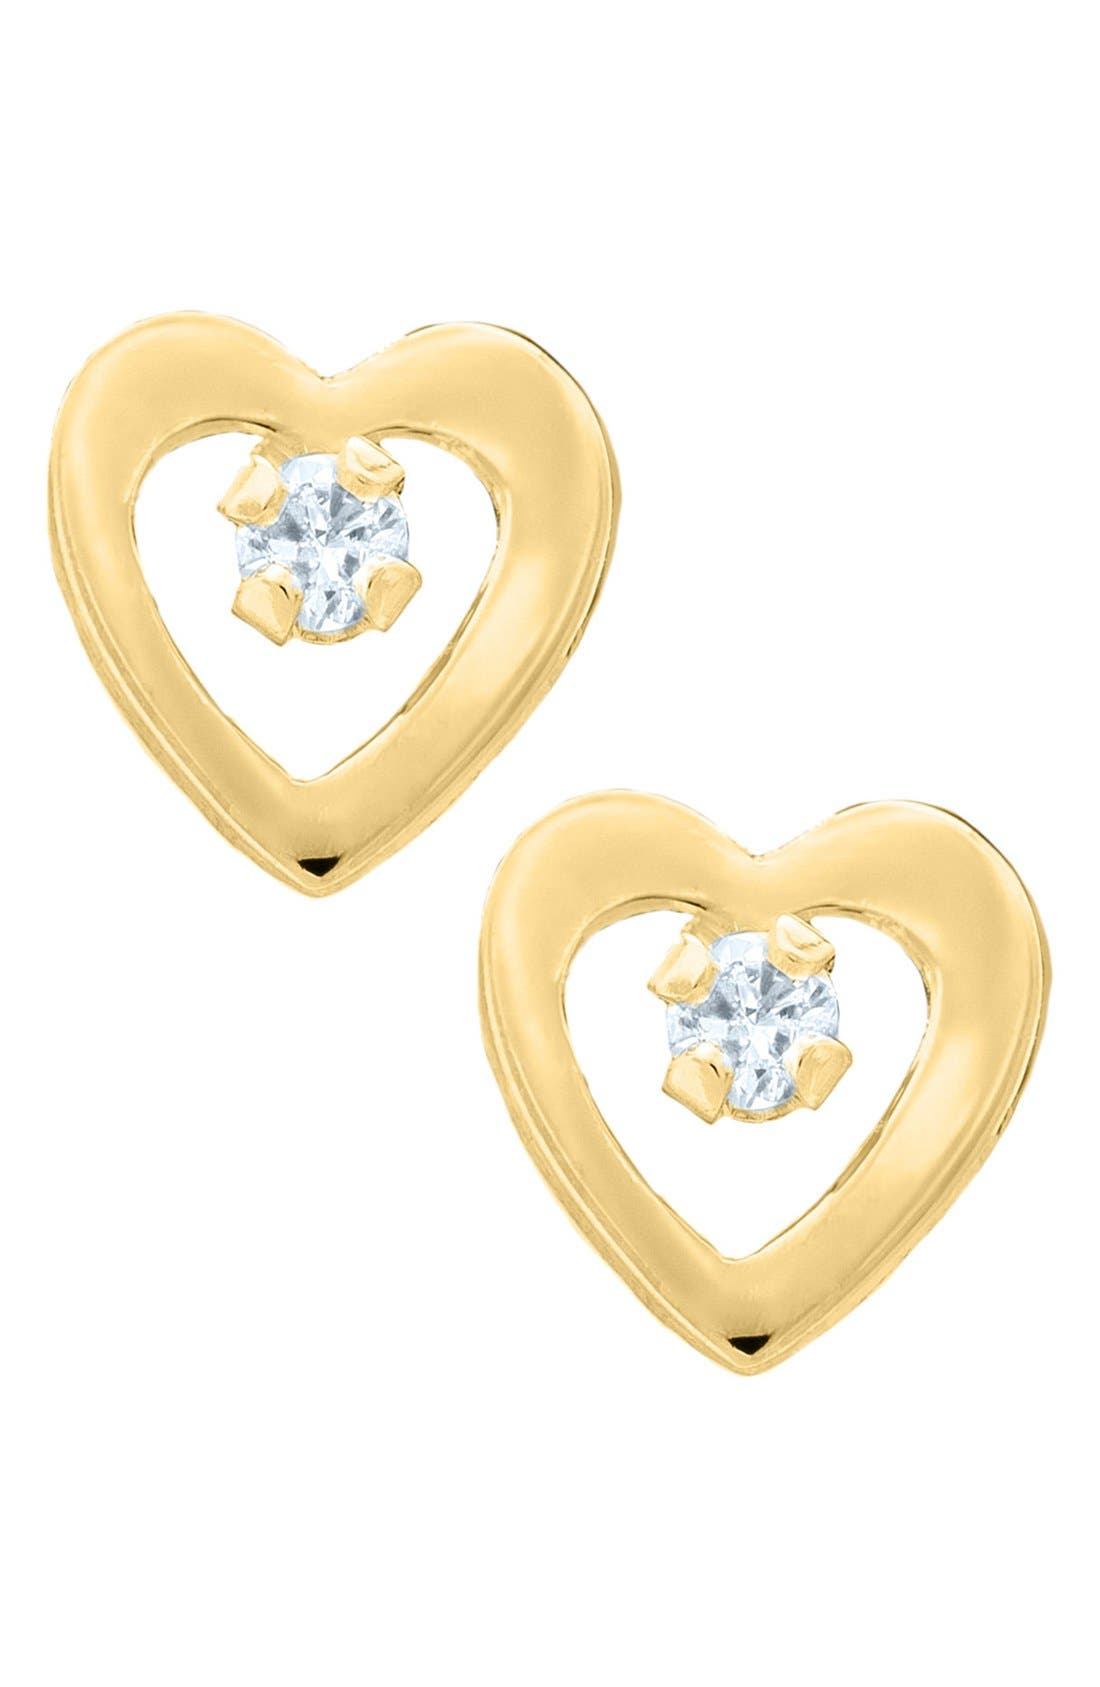 Alternate Image 1 Selected - Mignonette 14k Yellow Gold & Diamond Open Heart Earrings (Baby Girls)